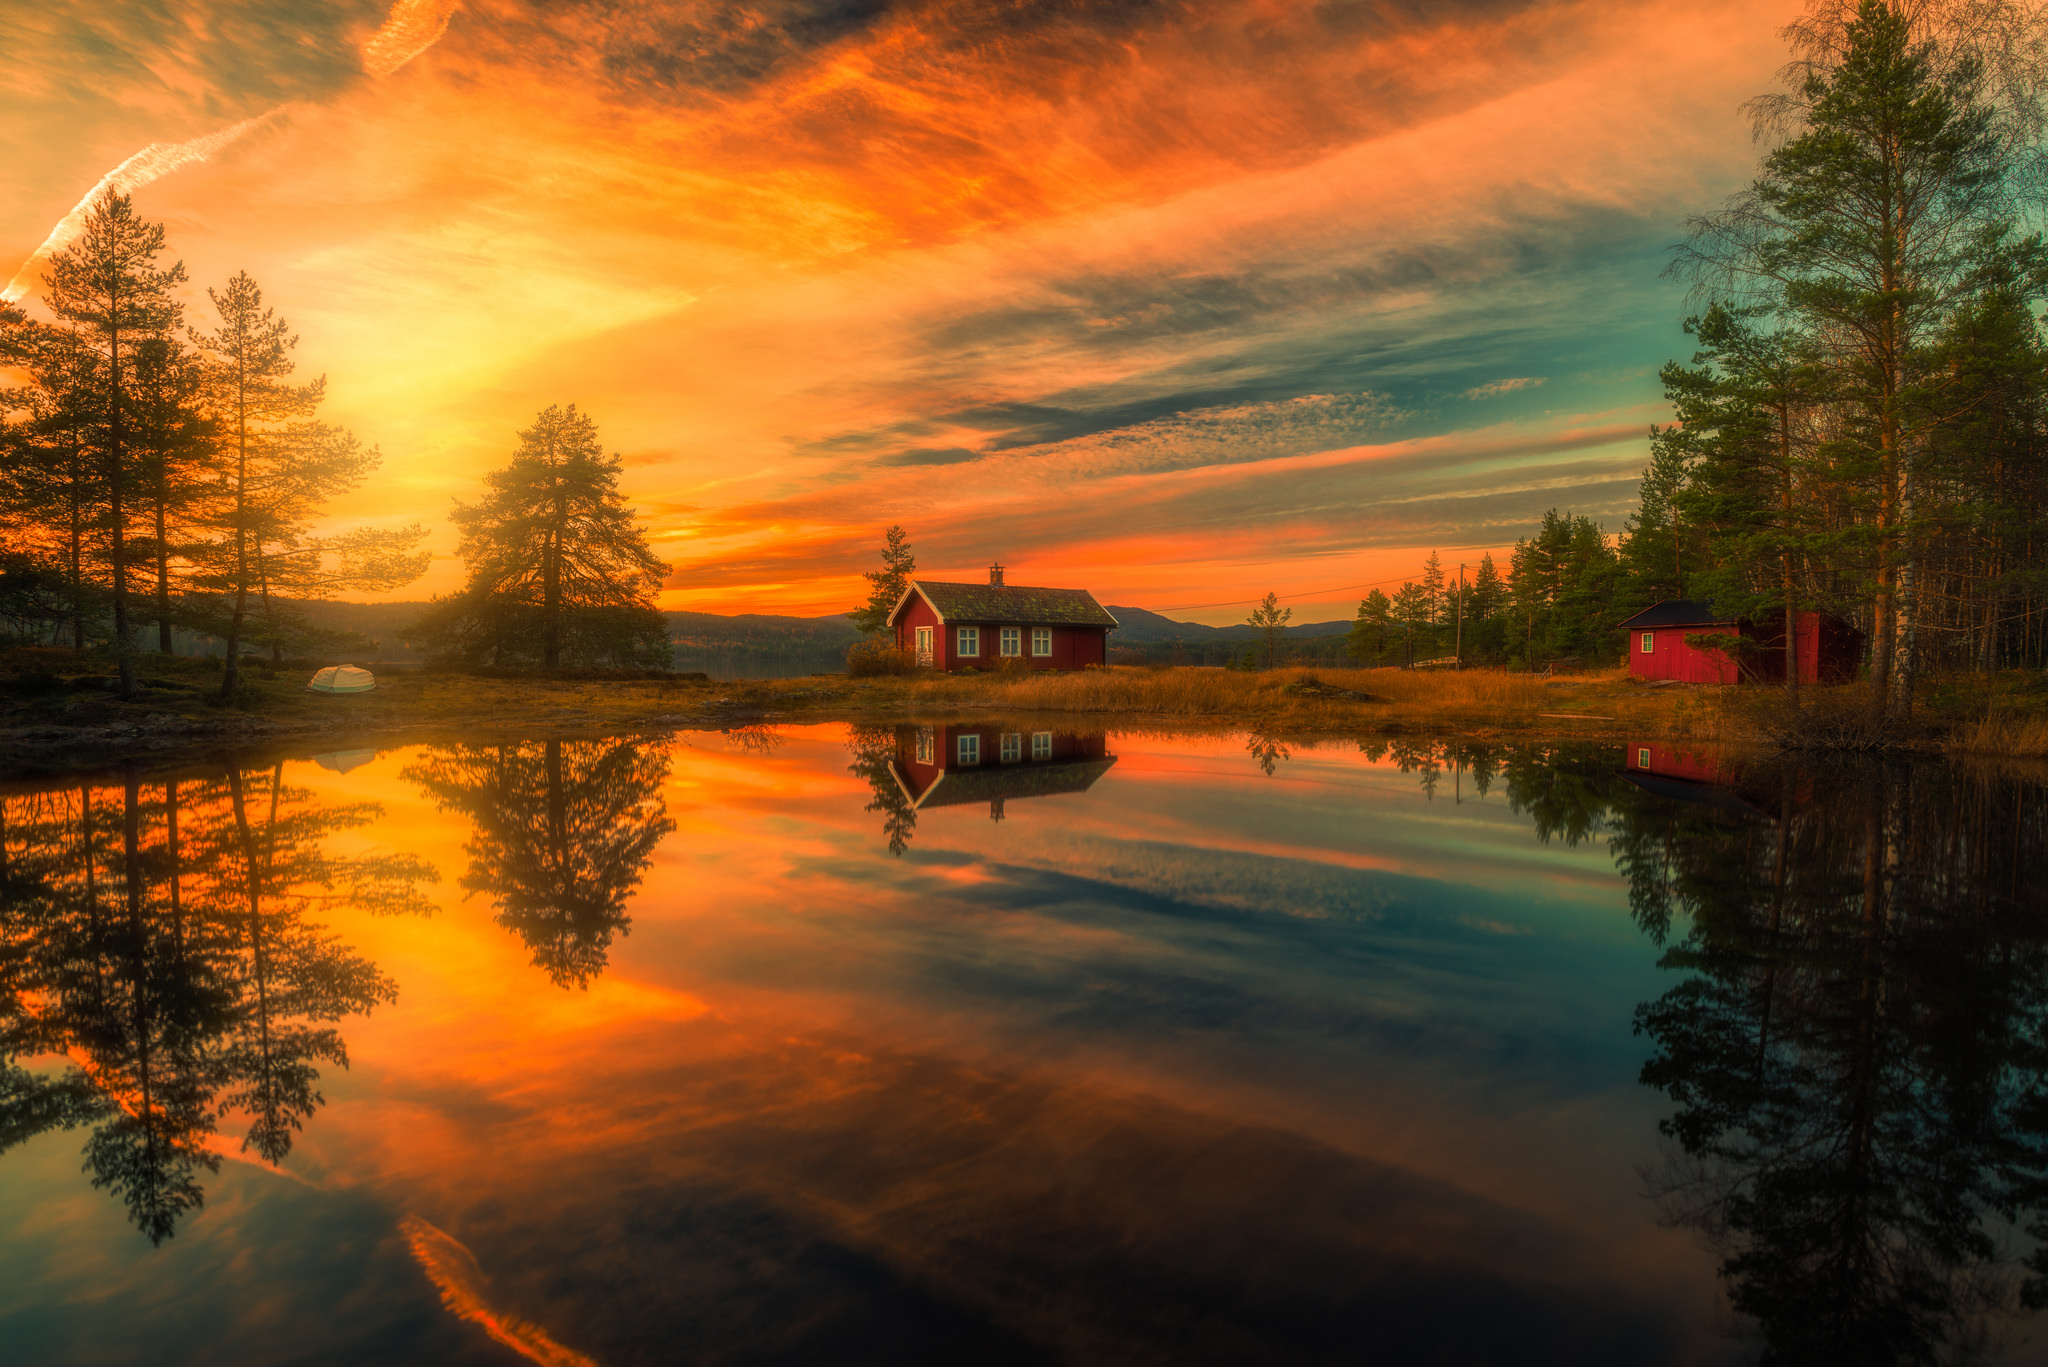 Haus am see wallpaper  Sunset over House on the Lake Full HD Wallpaper and Hintergrund ...